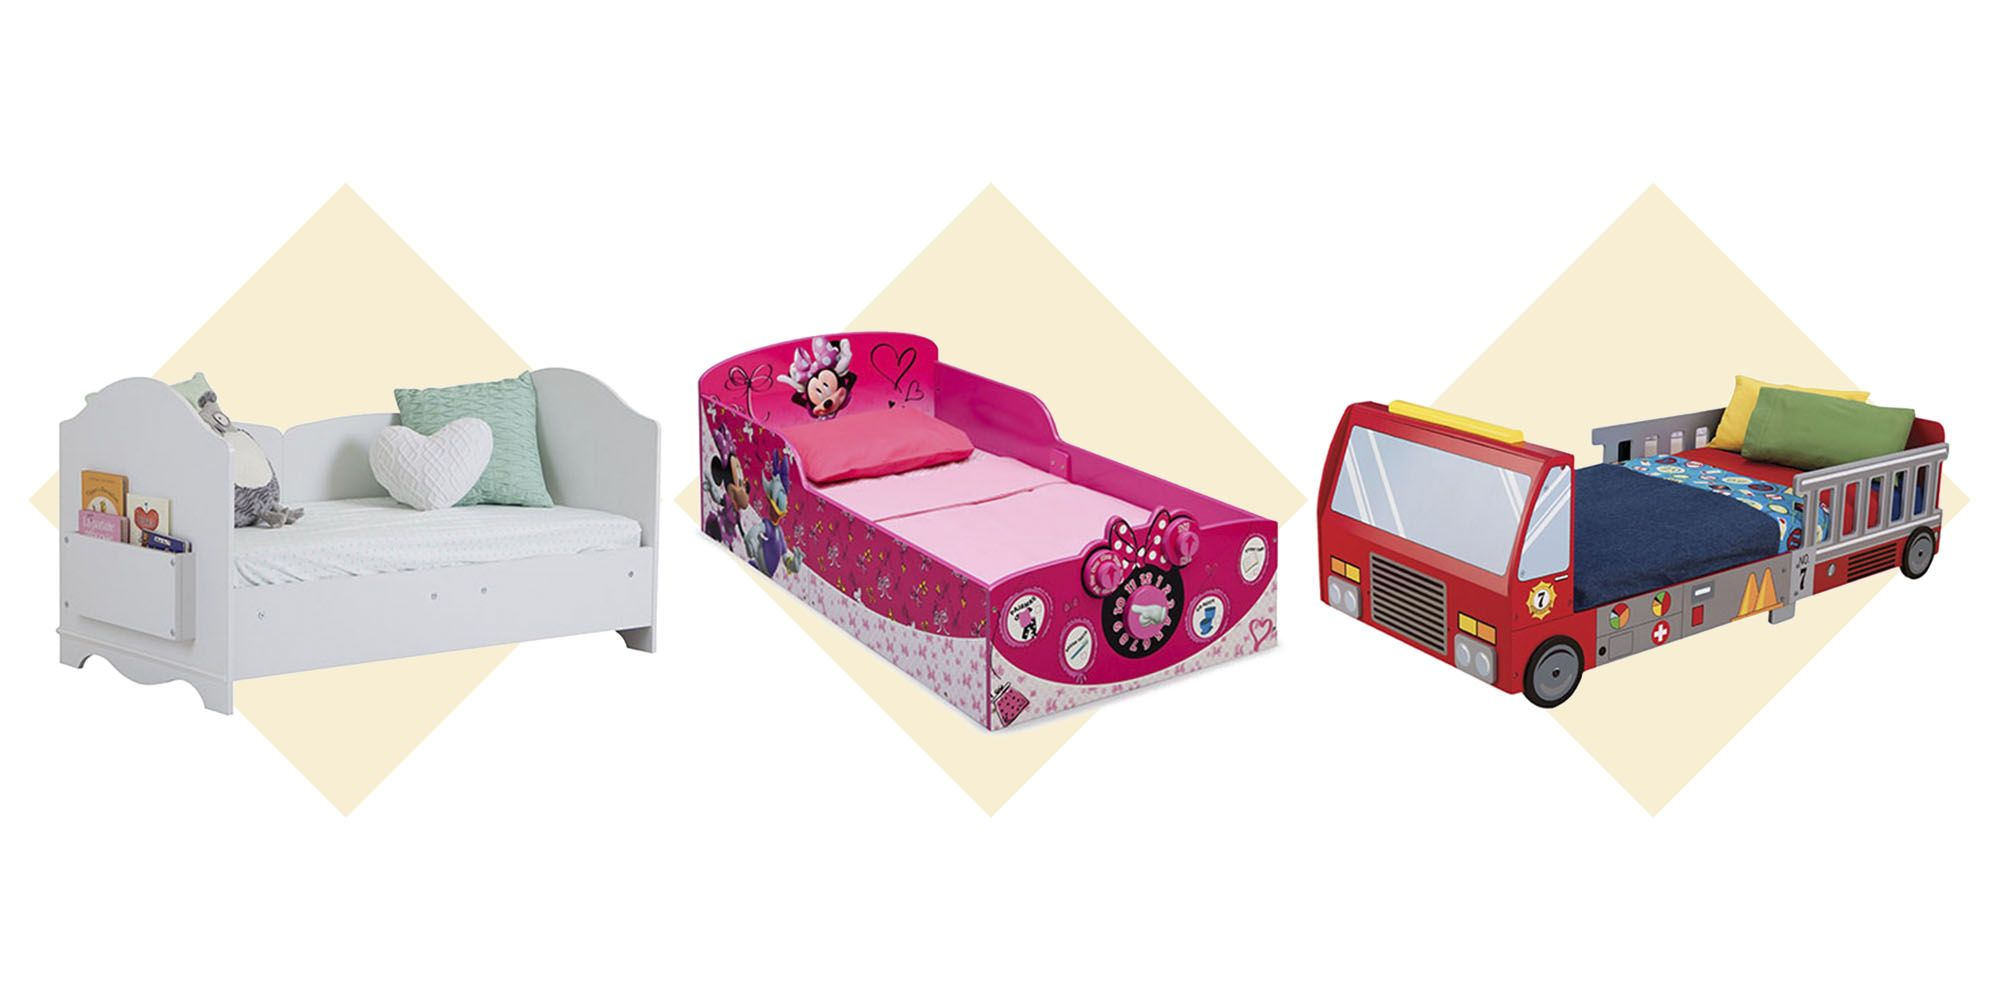 Cheap Toddler Beds 10 Best Toddler Beds For Boys And Girls In 2018 Cute And Cheap